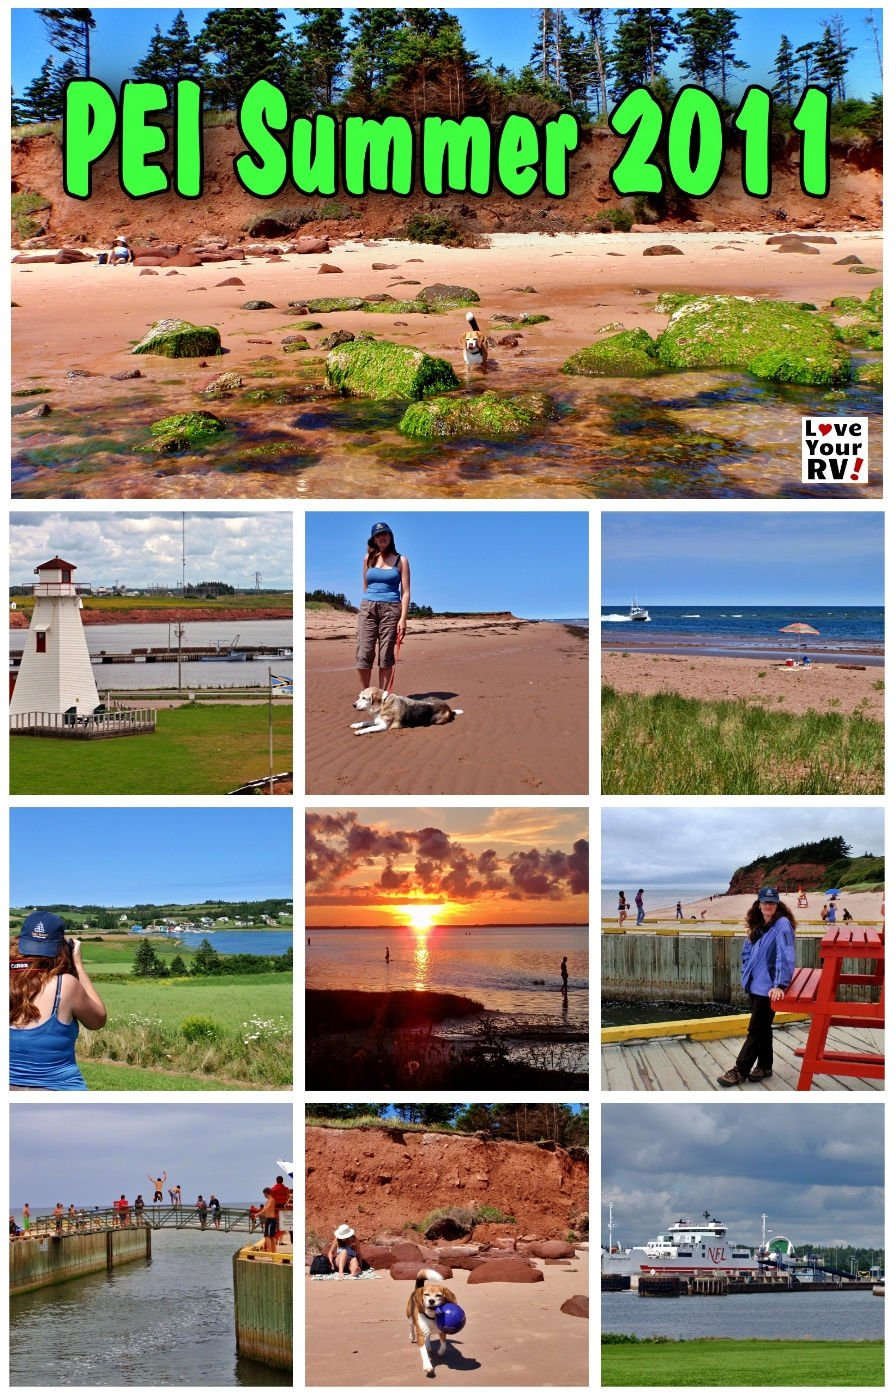 PEI Summer 2011 Throwback Video - Beagles Enjoy the Red Sand Beaches